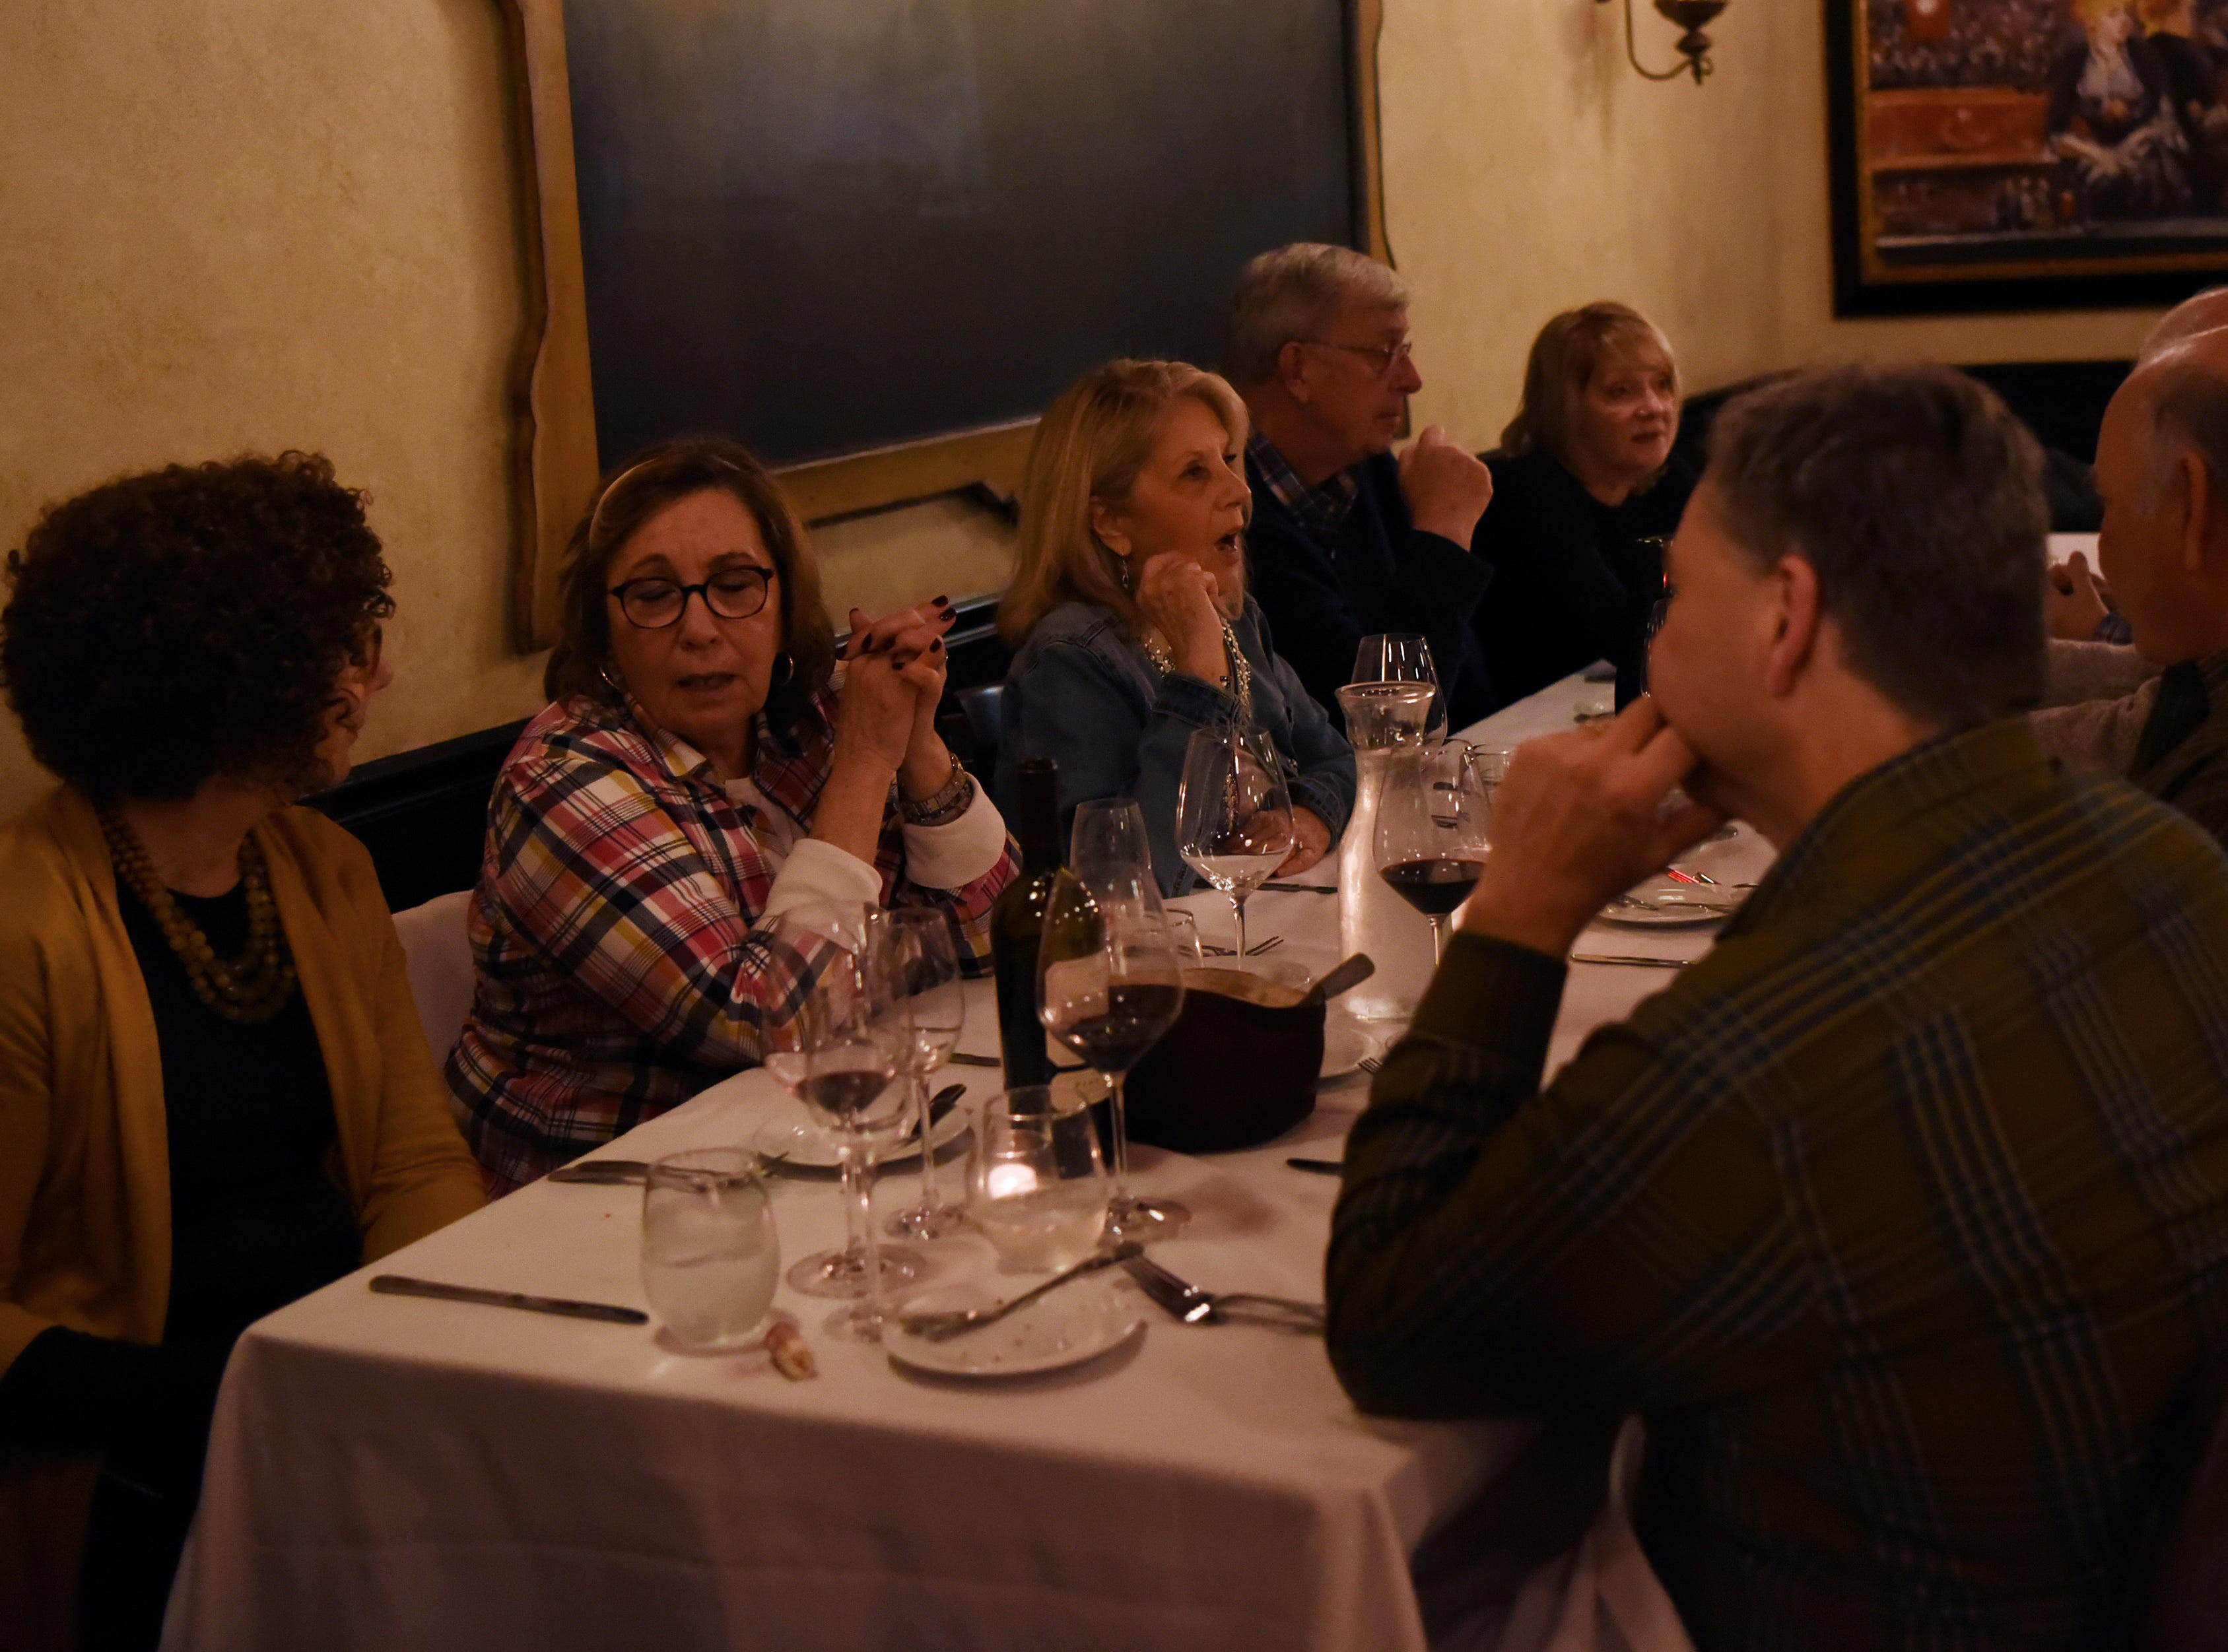 Diners during the dinner with Esther event at Technique, a French restaurant in Westwood on Thursday February 7, 2019.